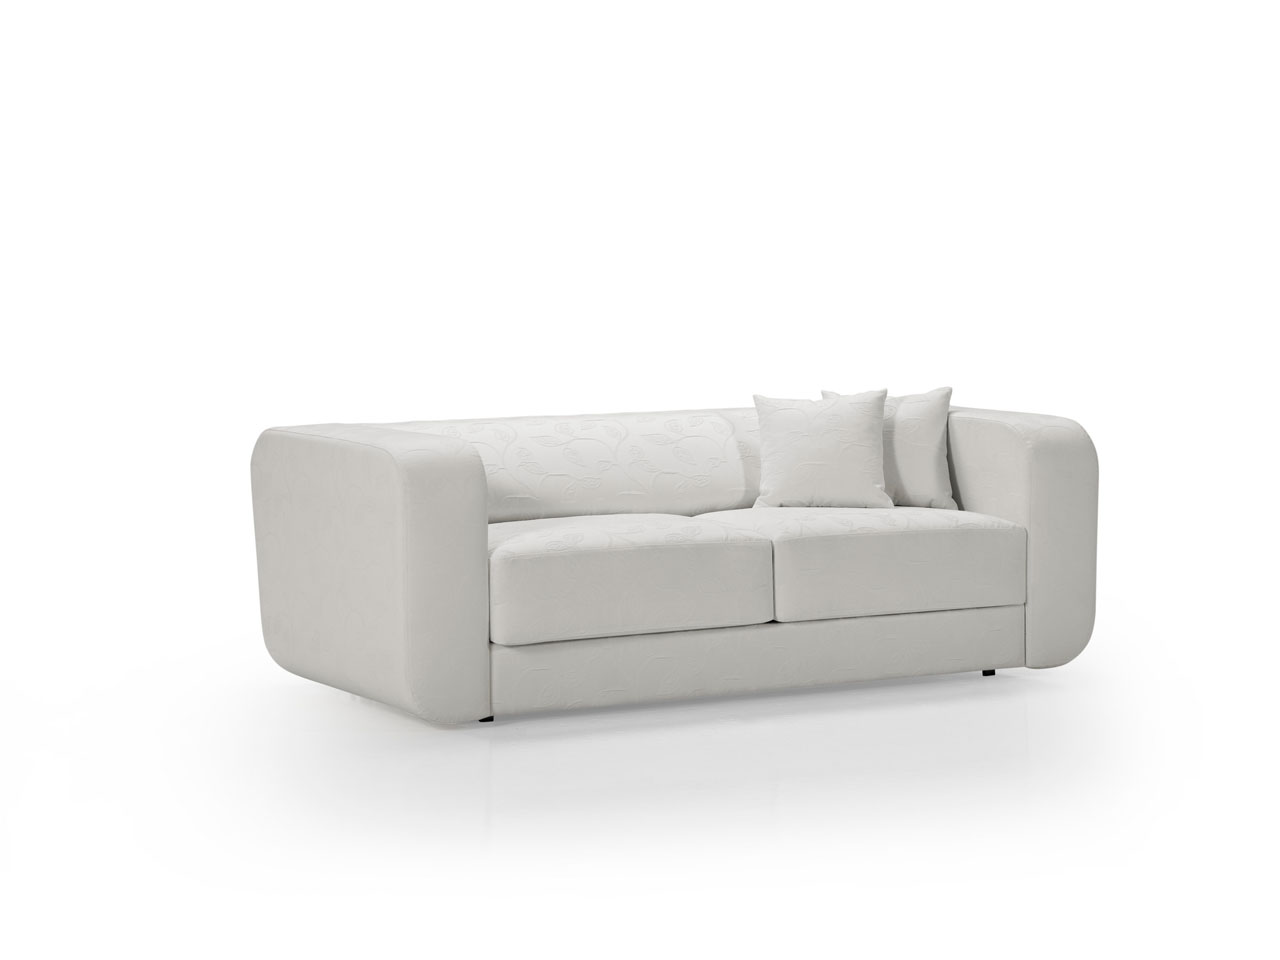 Sofas de diseo baratos luxury modern home furniture for Sofas vintage baratos